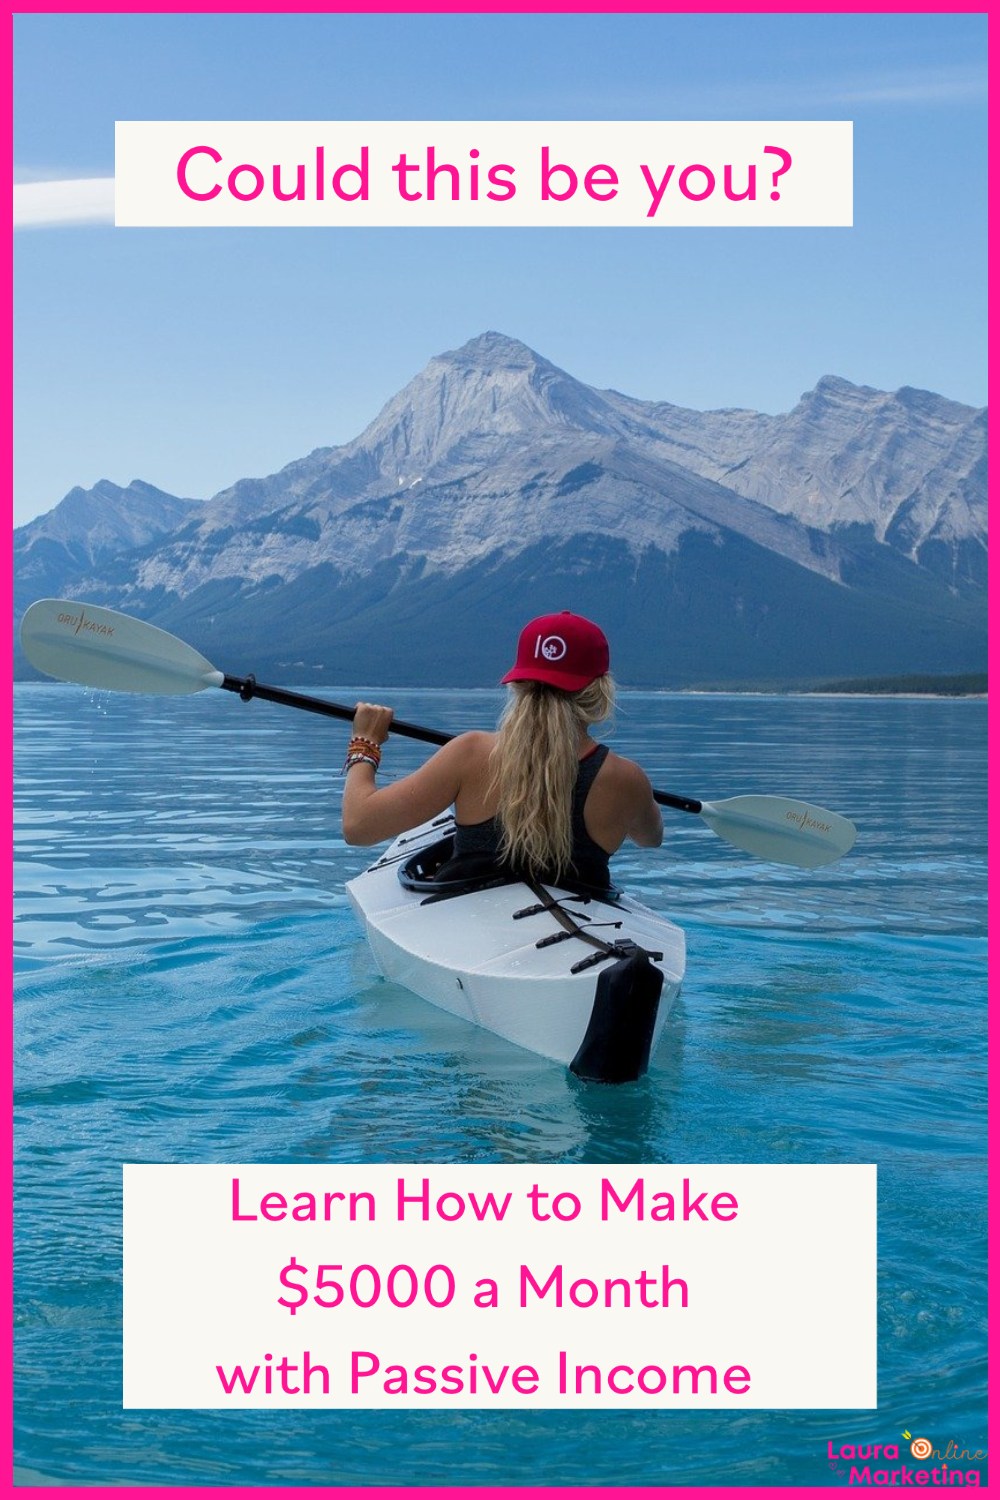 Learn how to make money online with passive income. There have been many before you who have created a different life for themselves. Why not you? Learn the skills and get going! #makemoneyonline #onlinebusiness #passiveincome #blogging